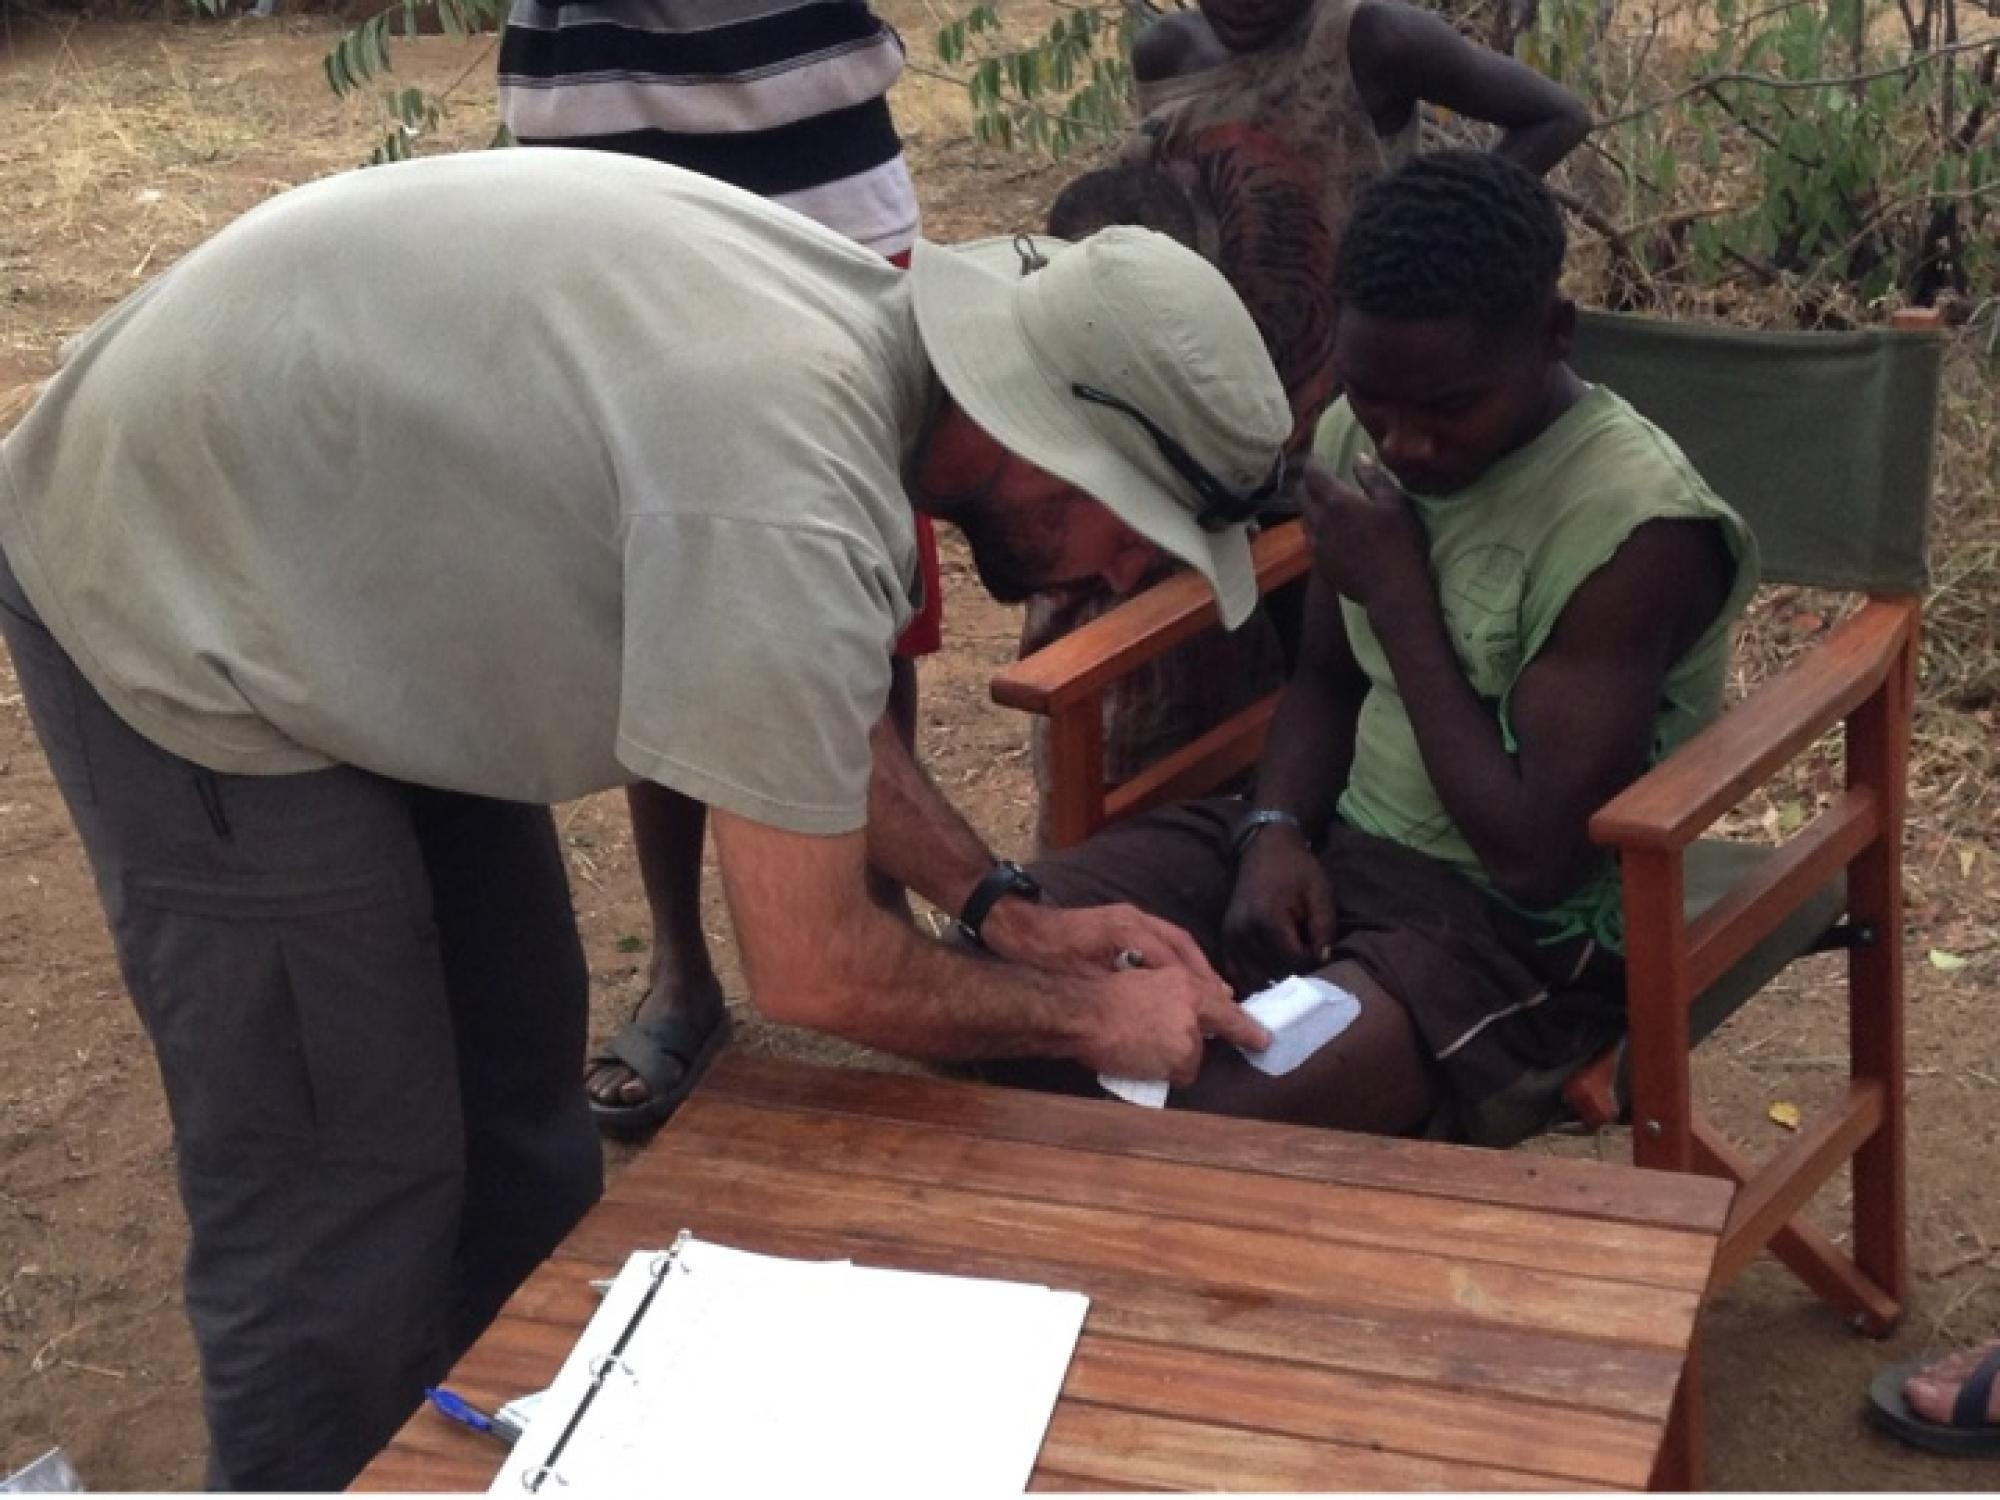 David Raichlen  and his colleagues have used accelerometers and heart monitors to get a better understanding of physical activity levels among the Hadza.